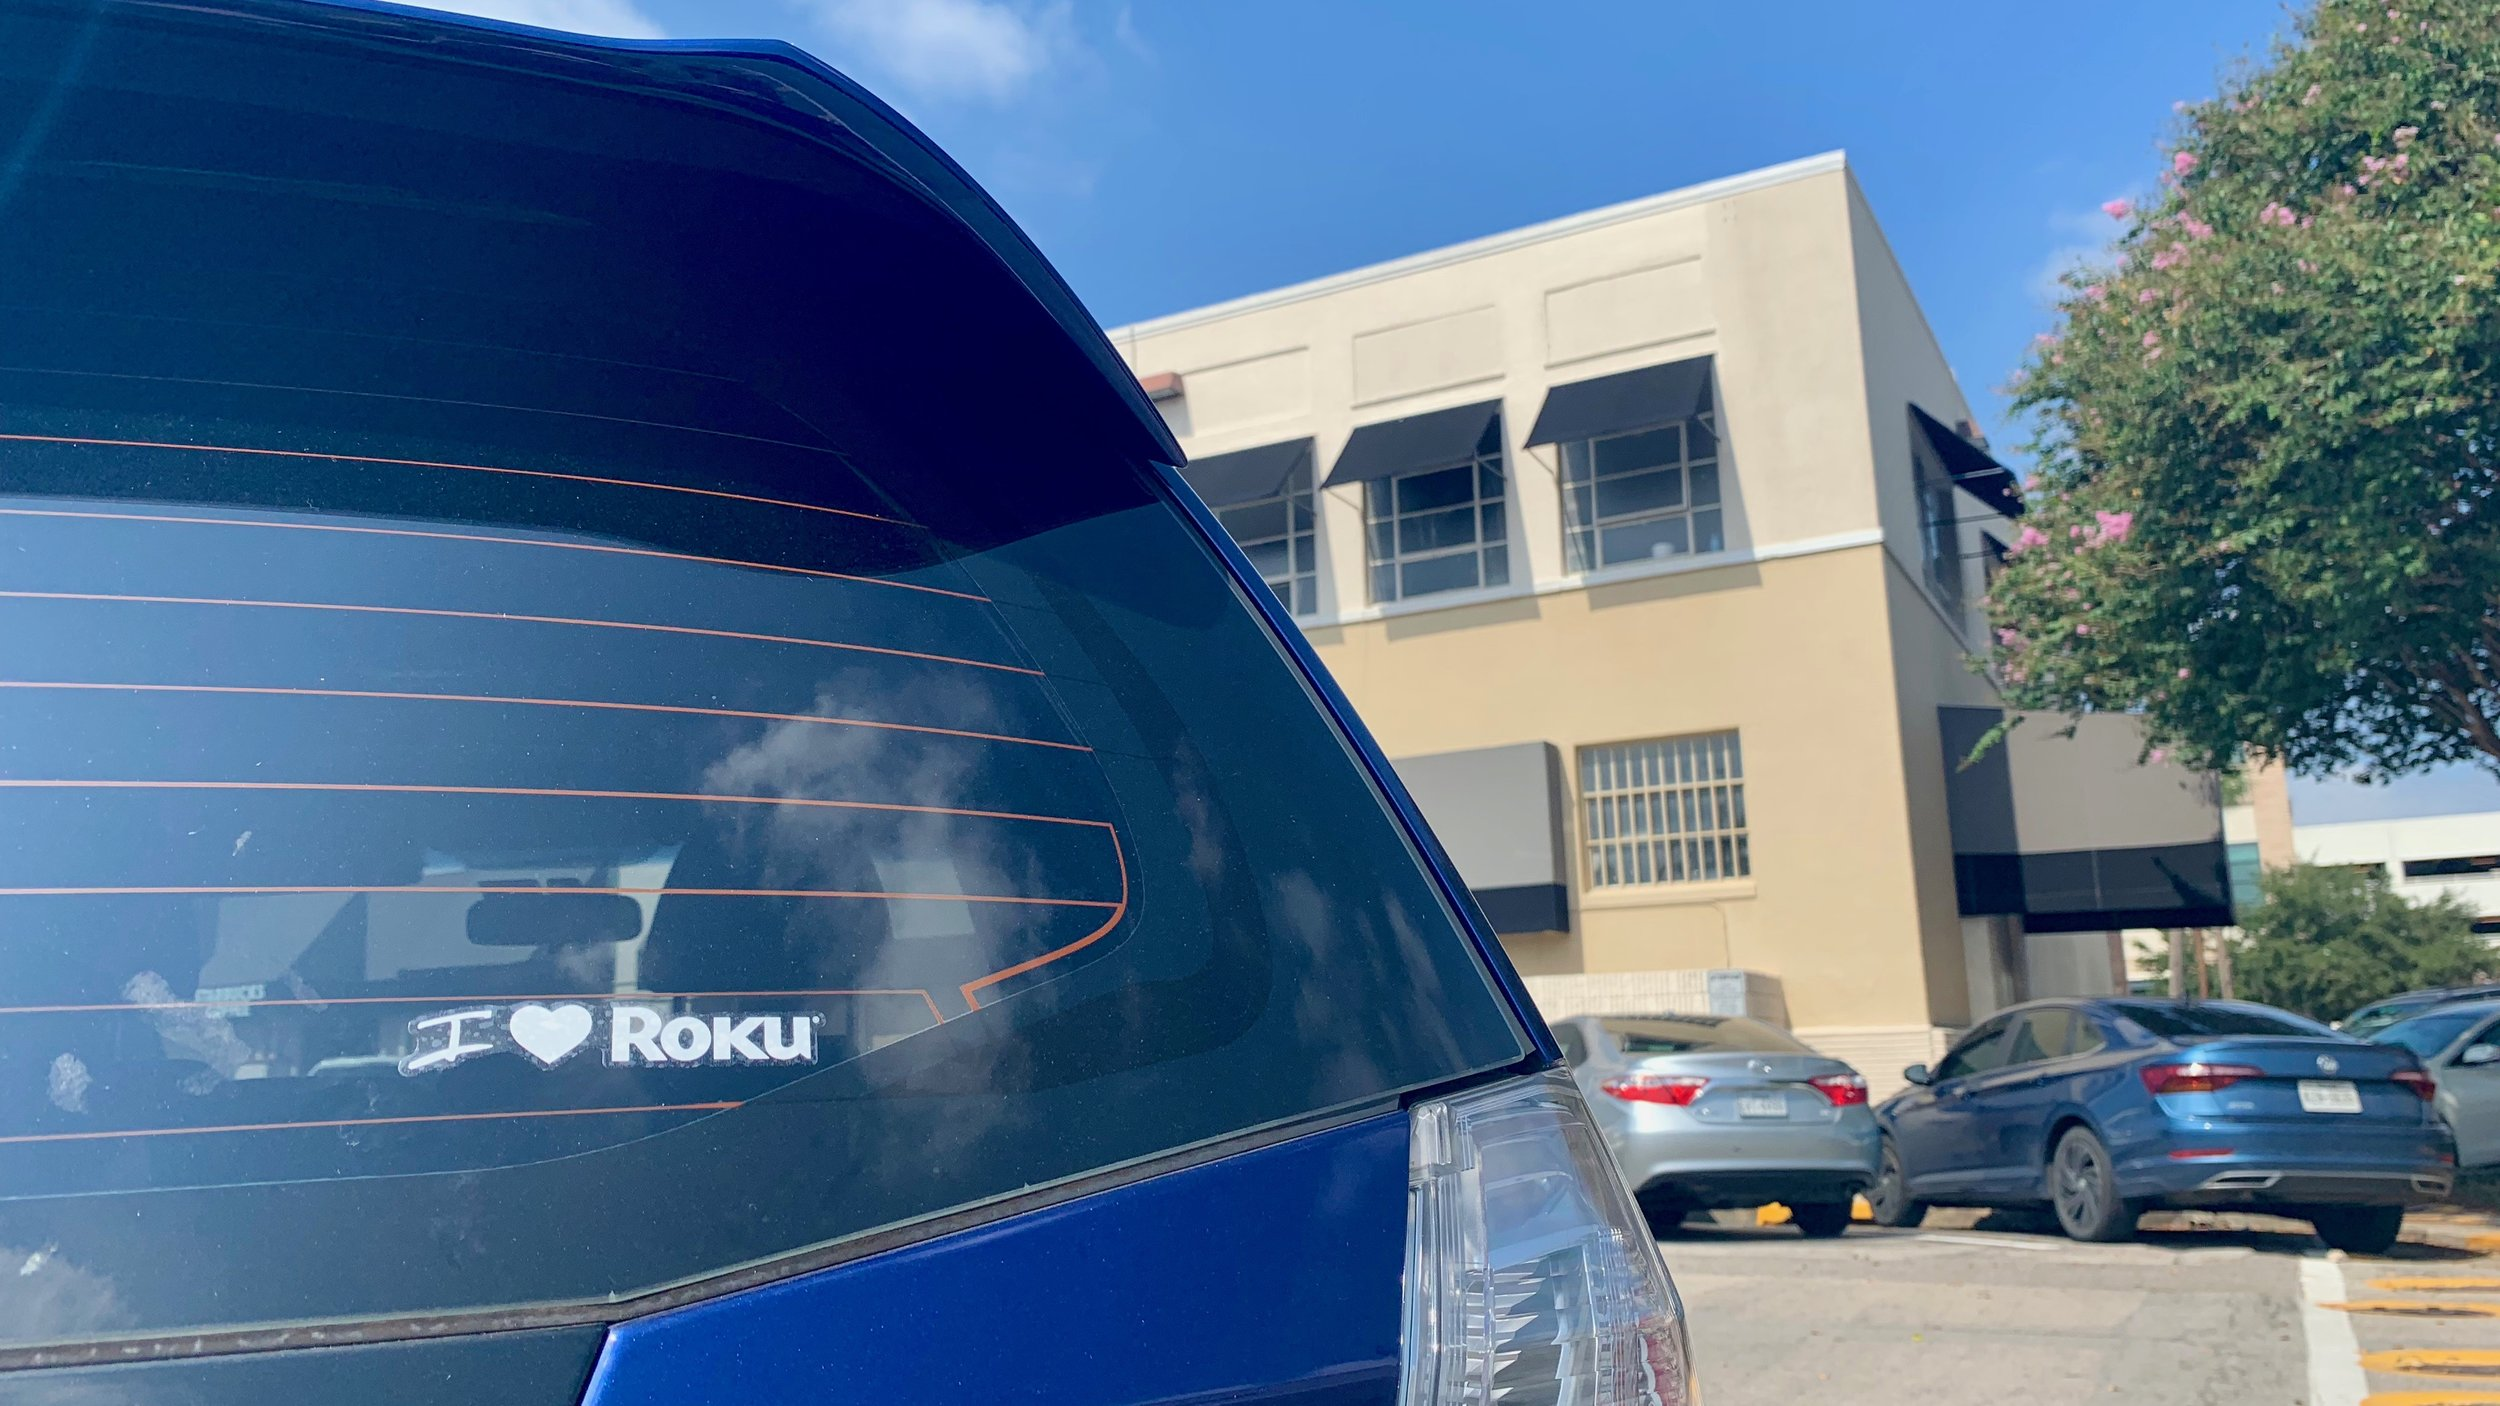 """This is the second Roku sticker I put on Katy's car. She removed the first one and blamed the people at the car wash, so I put a new one on her nice clean car. When I got this sticker with my Roku stick, I thought """"I really like Roku, but I would never put a Roku sticker on anything."""" Anything—except for Katy's car for this photo."""